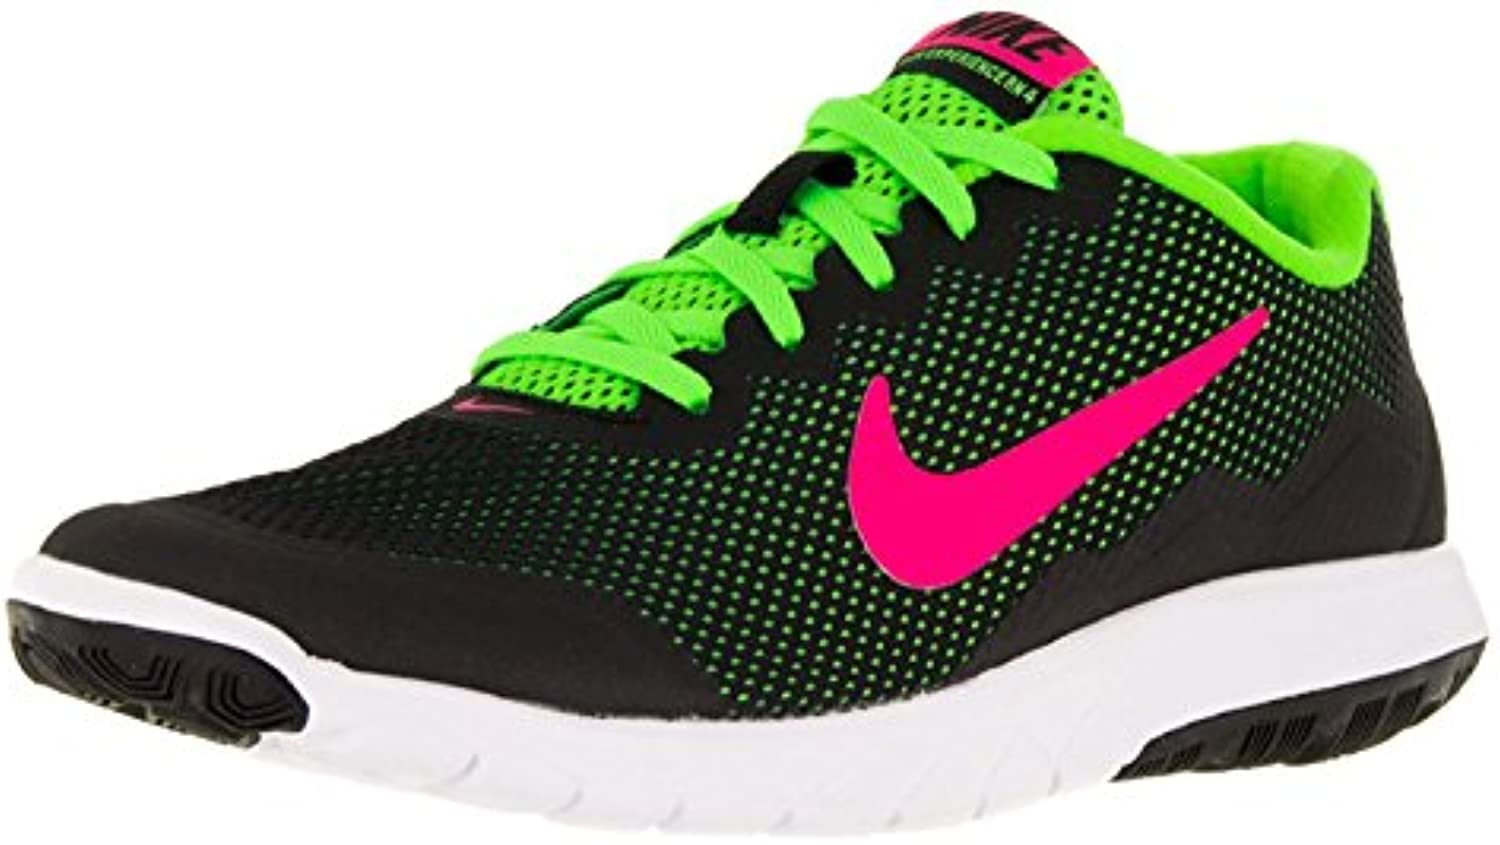 Nike Wmns Flex Experience 4749178 019  Black/Pink Blast/Electric Green/White  40 BM EU/6 BM UK